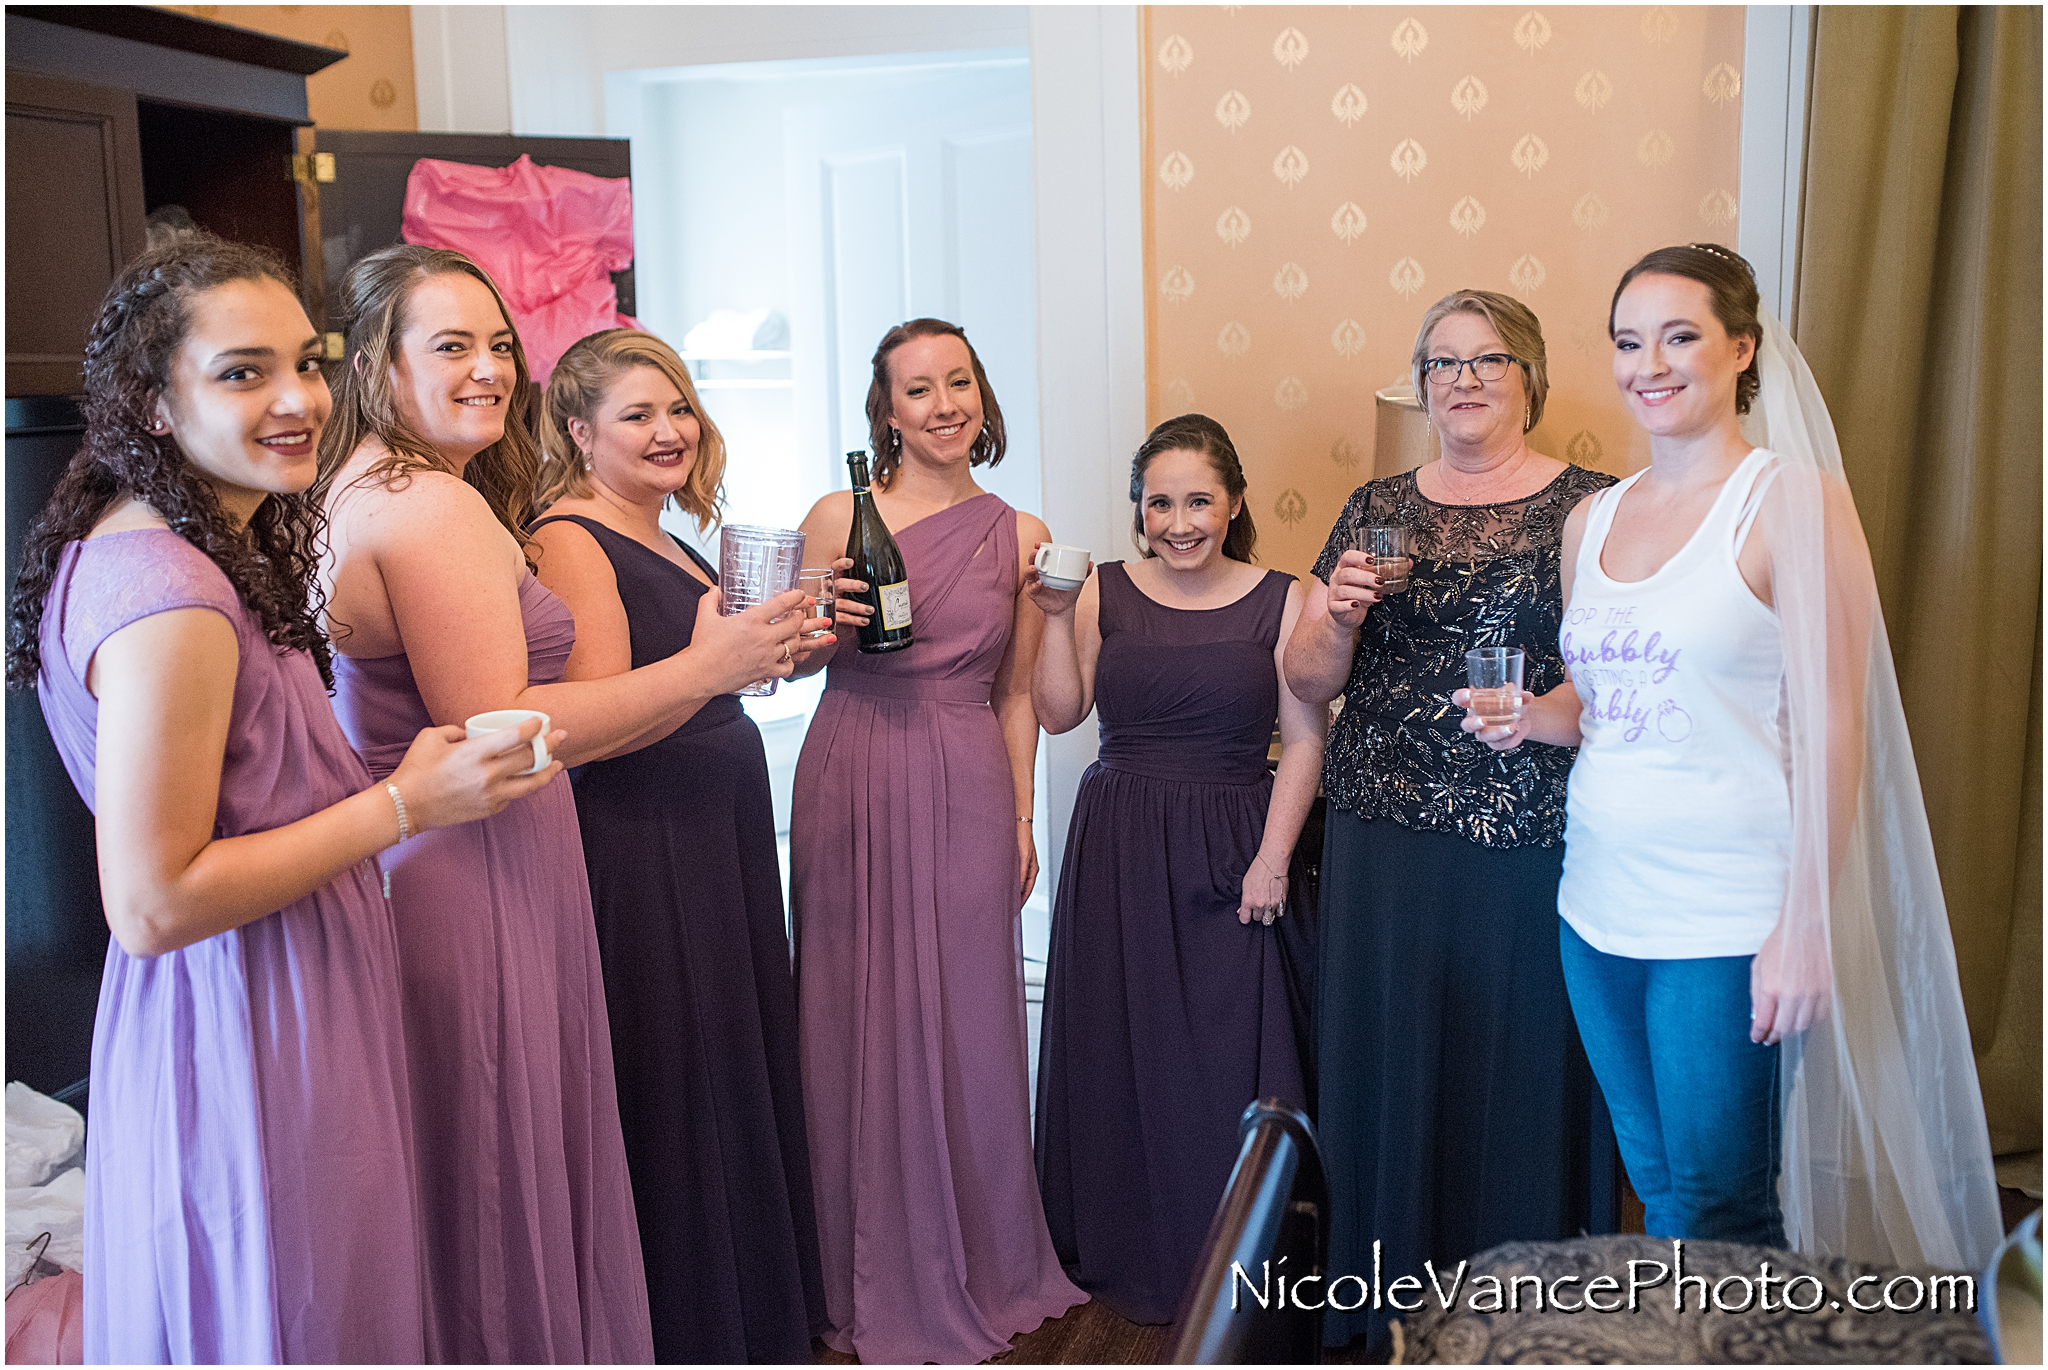 One last champagne toast before the bride gets dress for her big day!